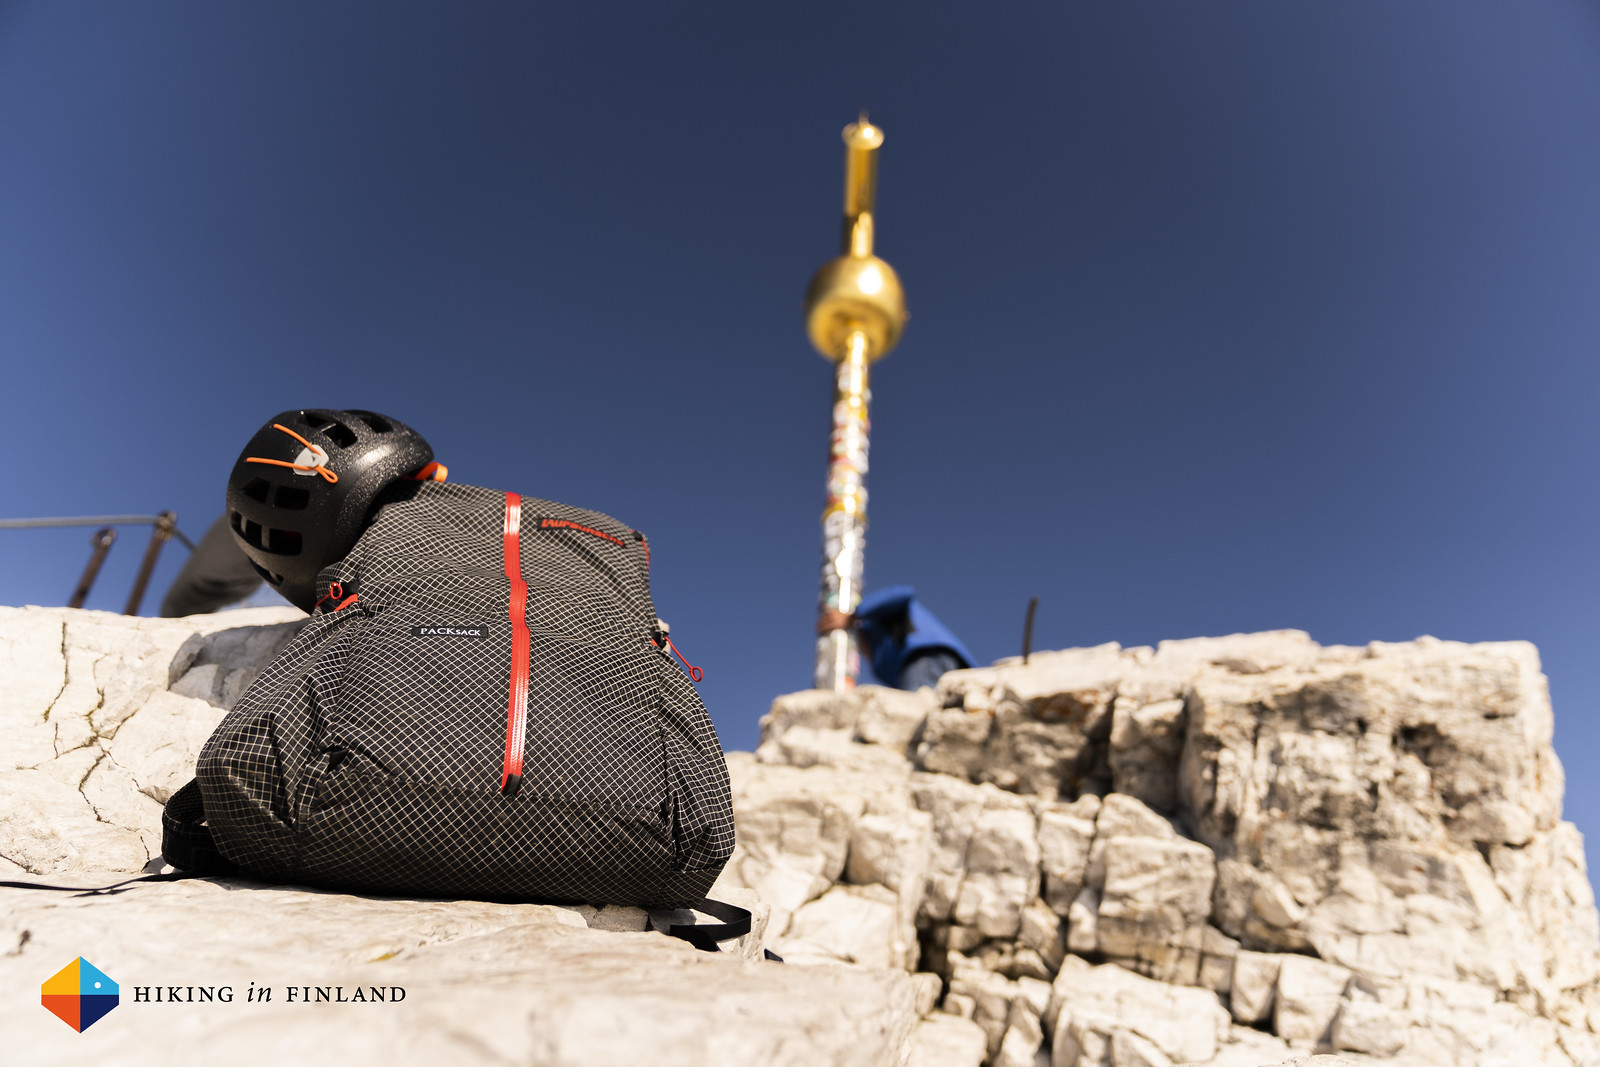 PACKsack at the Summit